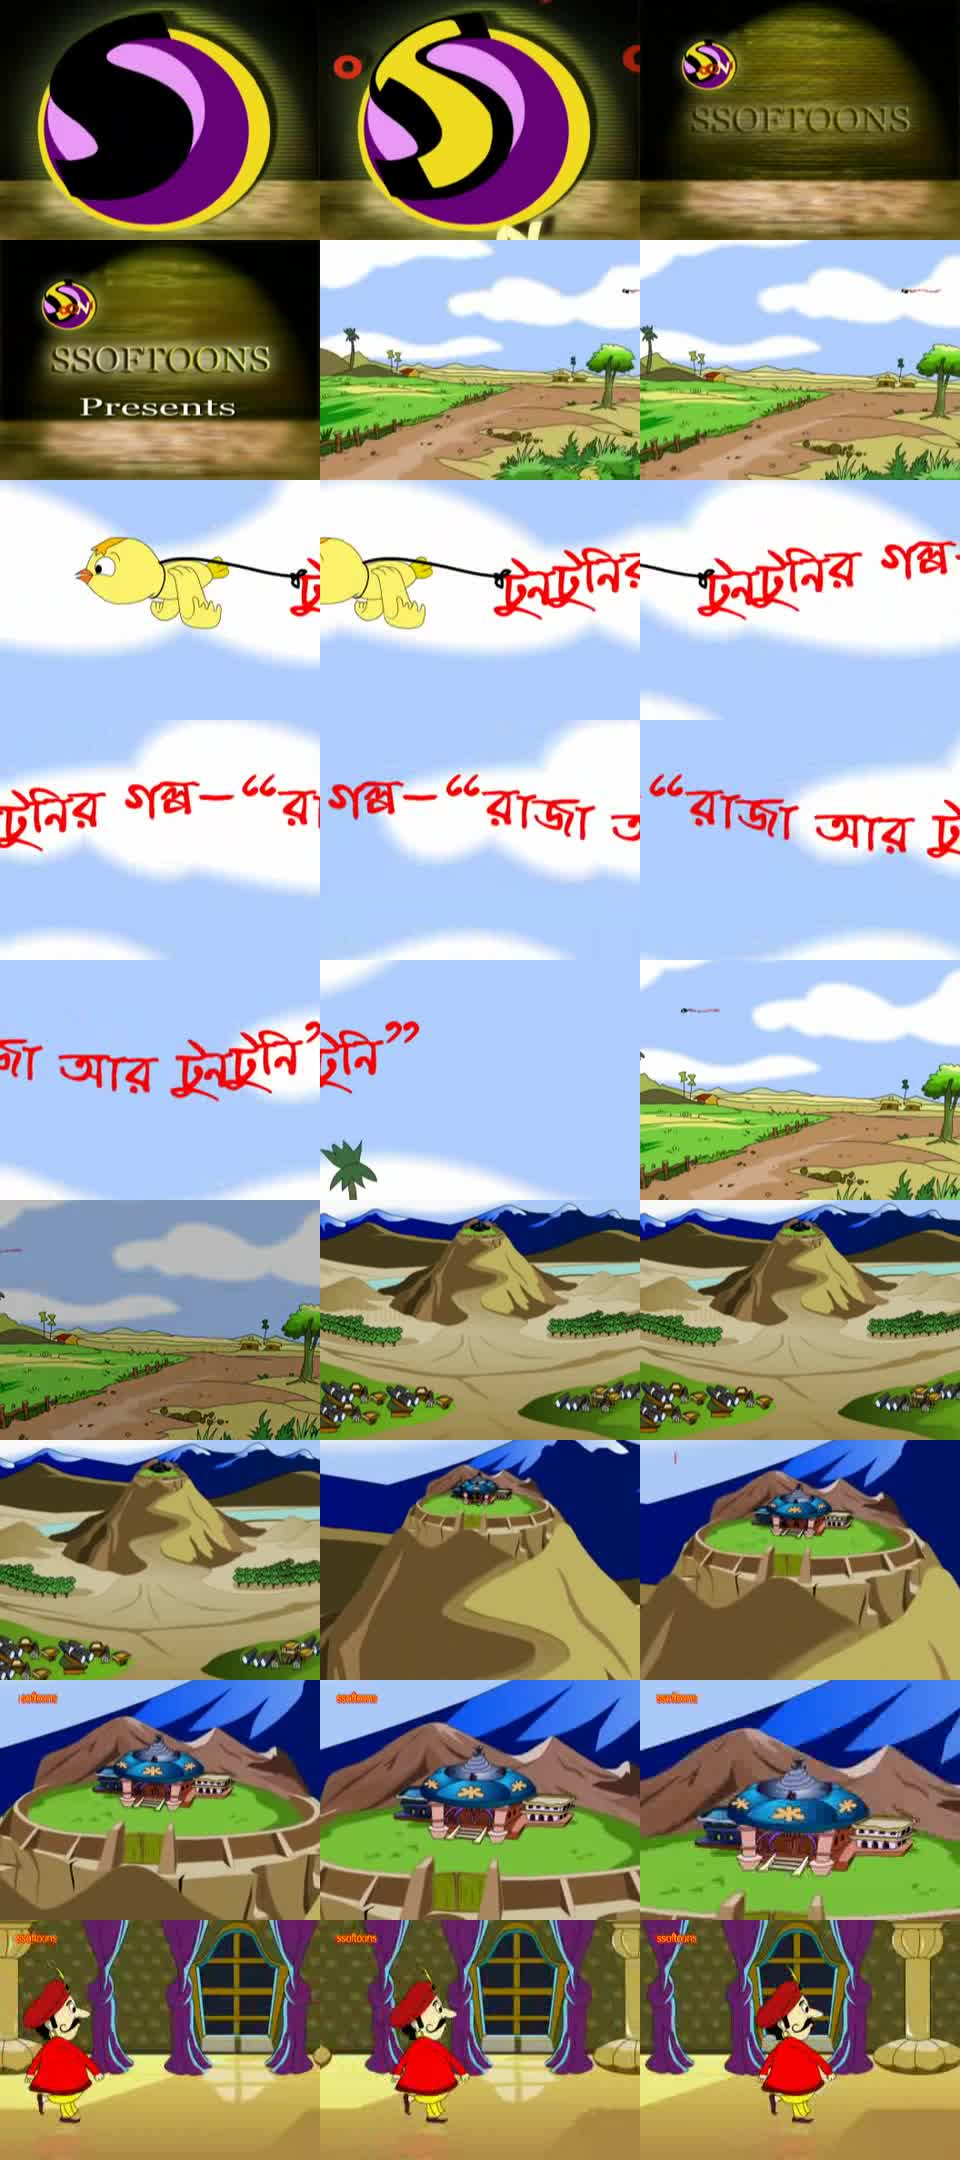 Download Toni Ebong Rajar Golpo 3gp Cartoon 144p★176p (পুনরায় আপলোড)For New People BDRong24.Com